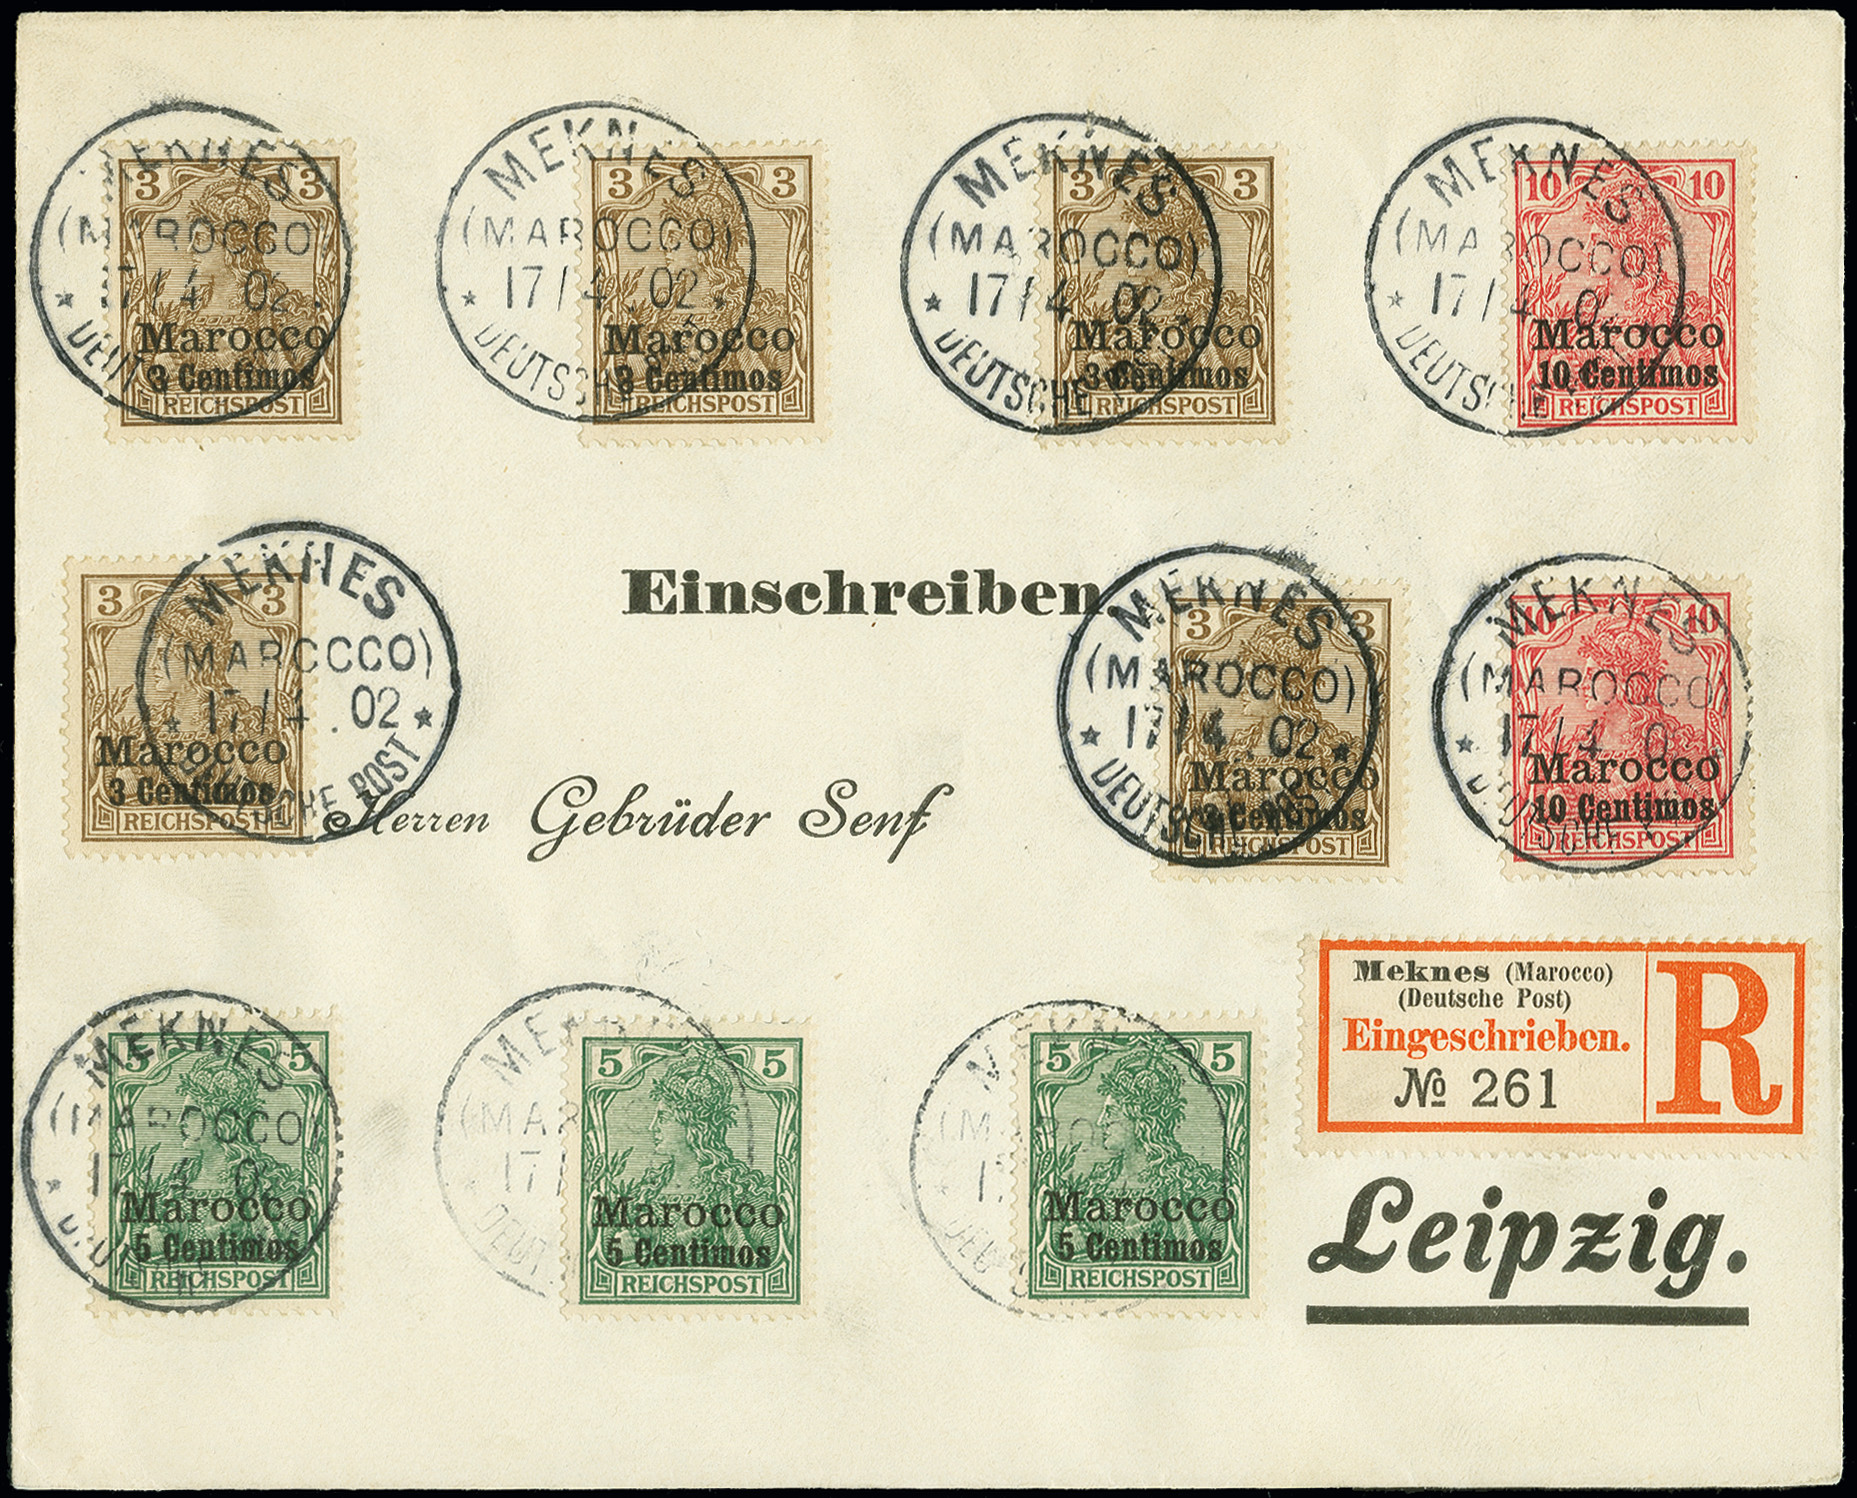 Lot 1546 - german colonies and offices abroad german post in marocco -  Heinrich Koehler Auktionen Auction #368- Day 4